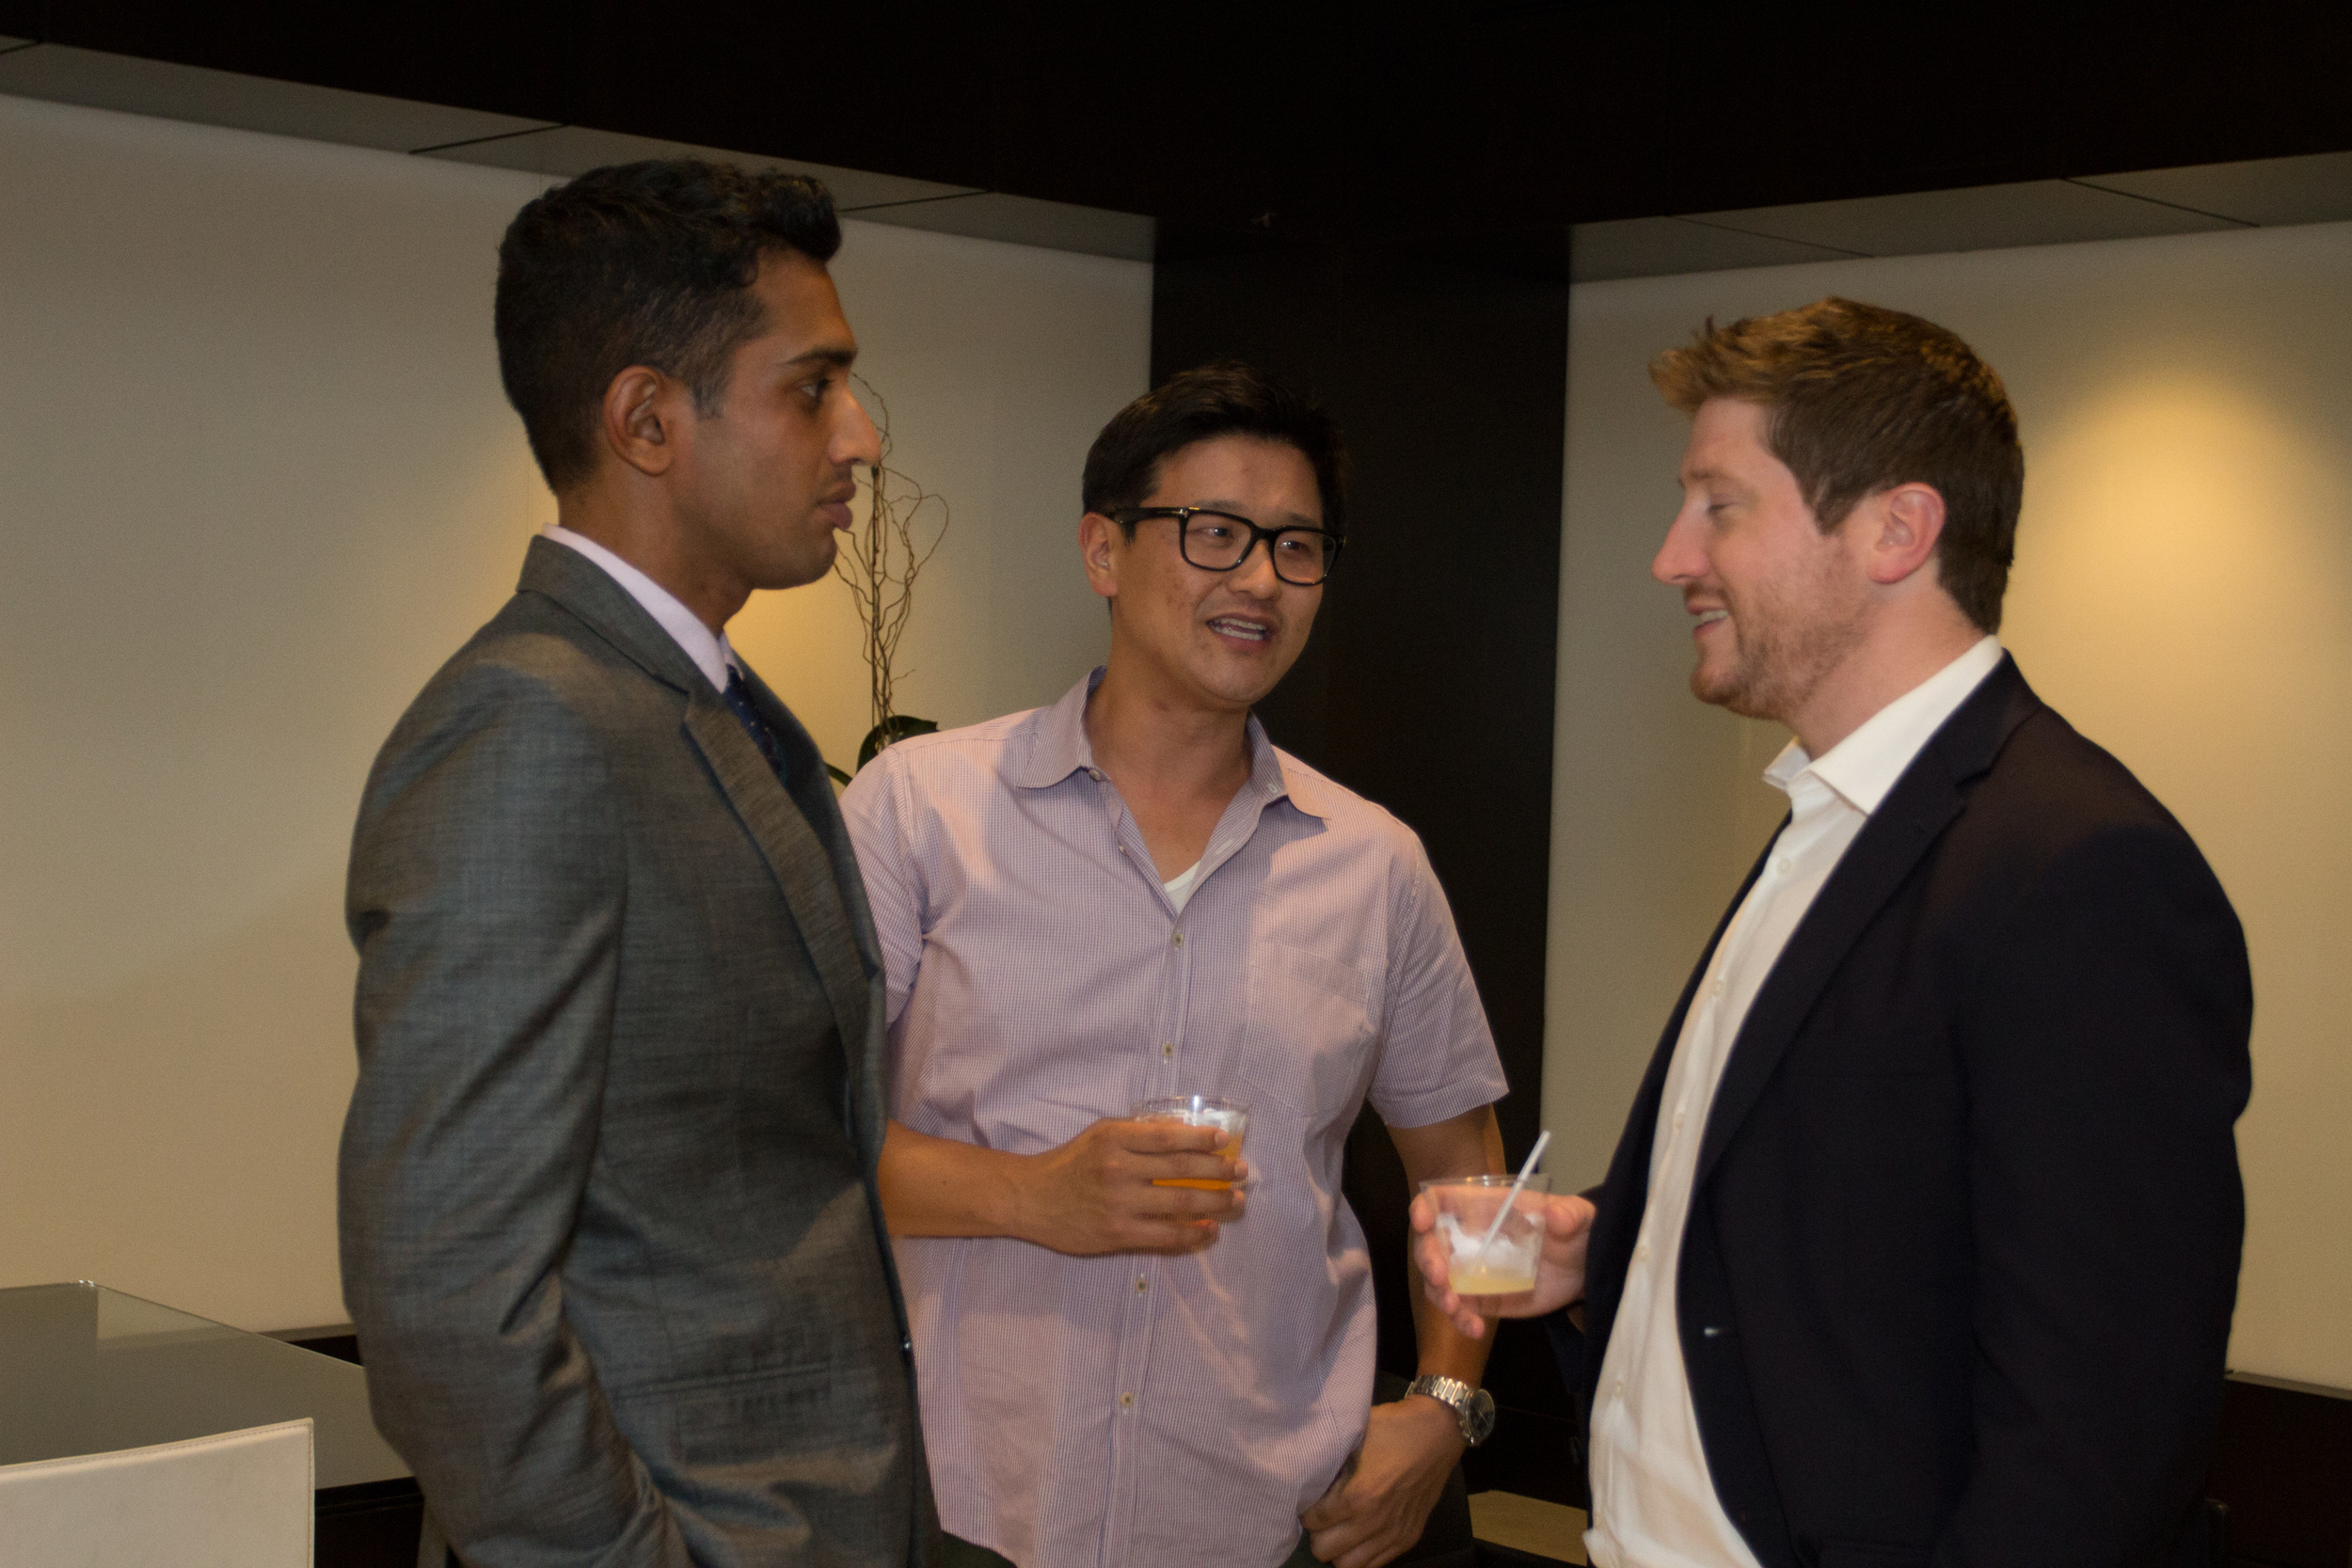 Vikram Arumilli of CAA, Rich Jun of BAM Ventures, & Guest